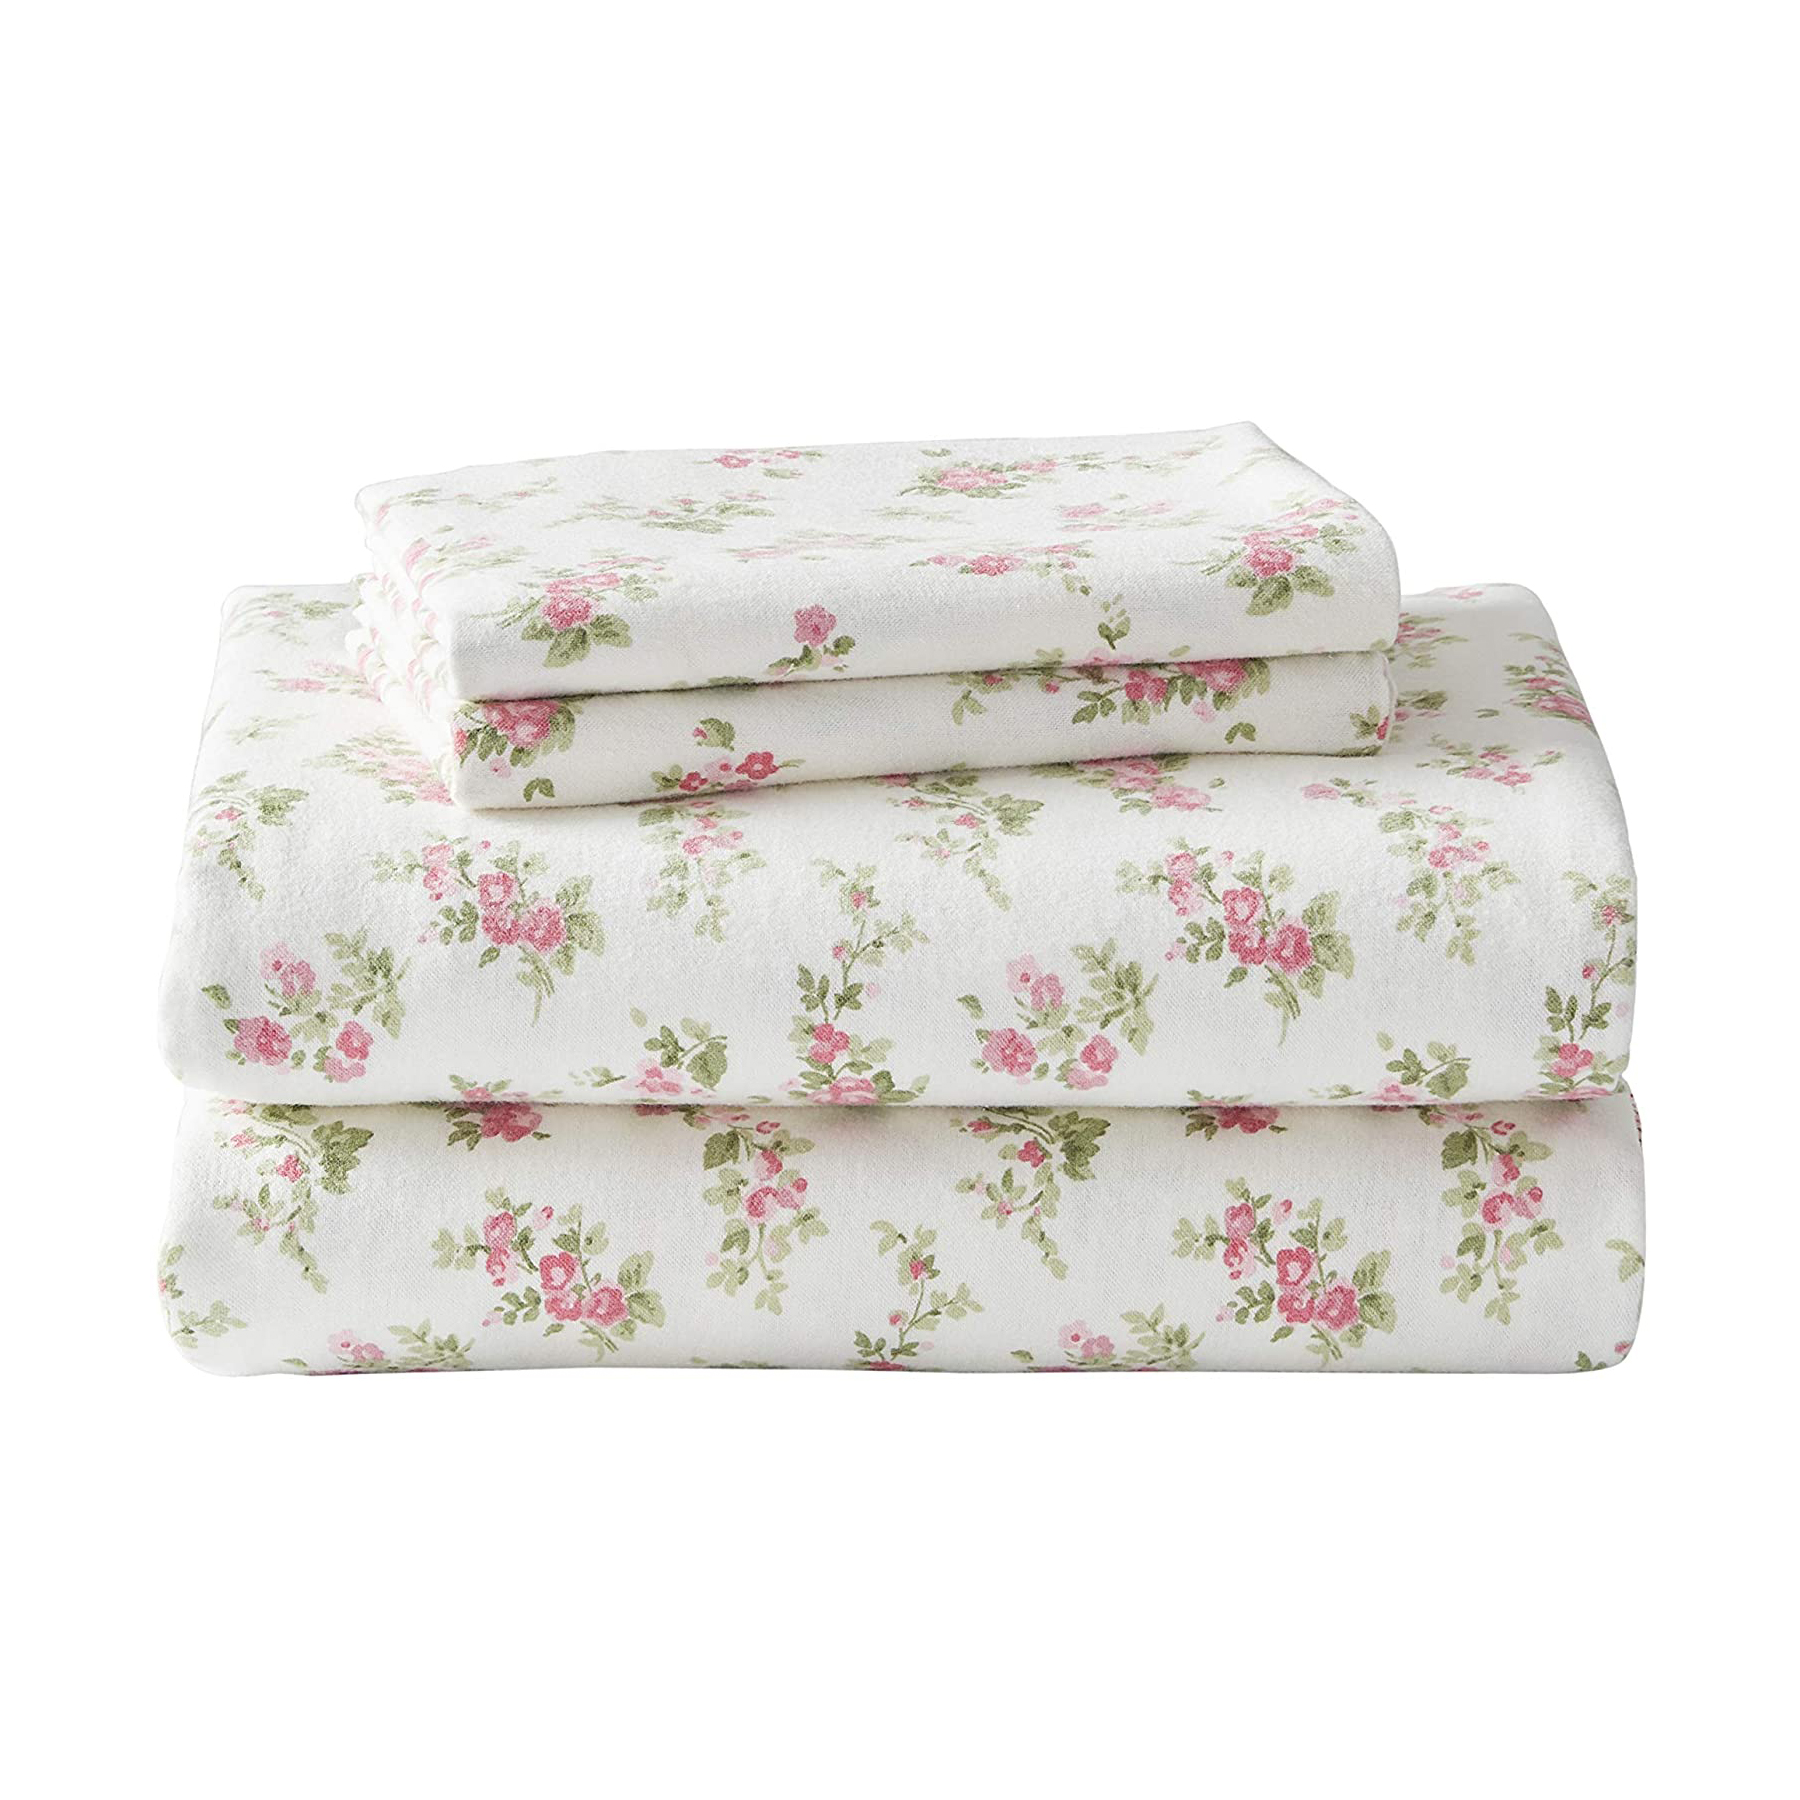 Laura Ashley Home Flannel Collection 100% Premium Cotton Bedding Sheet Set